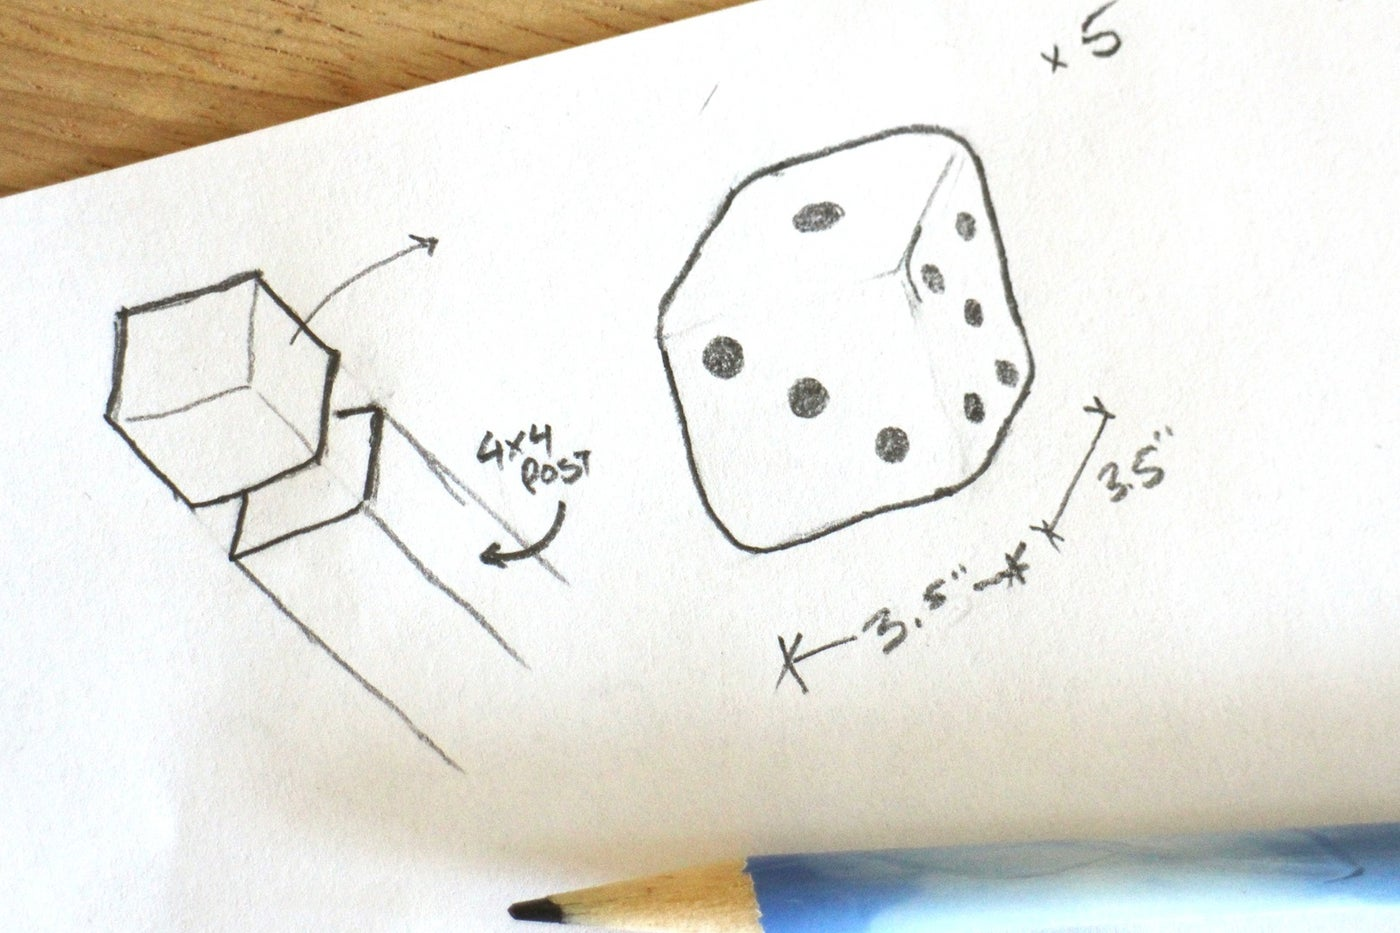 Project Time - Yard Dice With Perfectly Straight Cuts